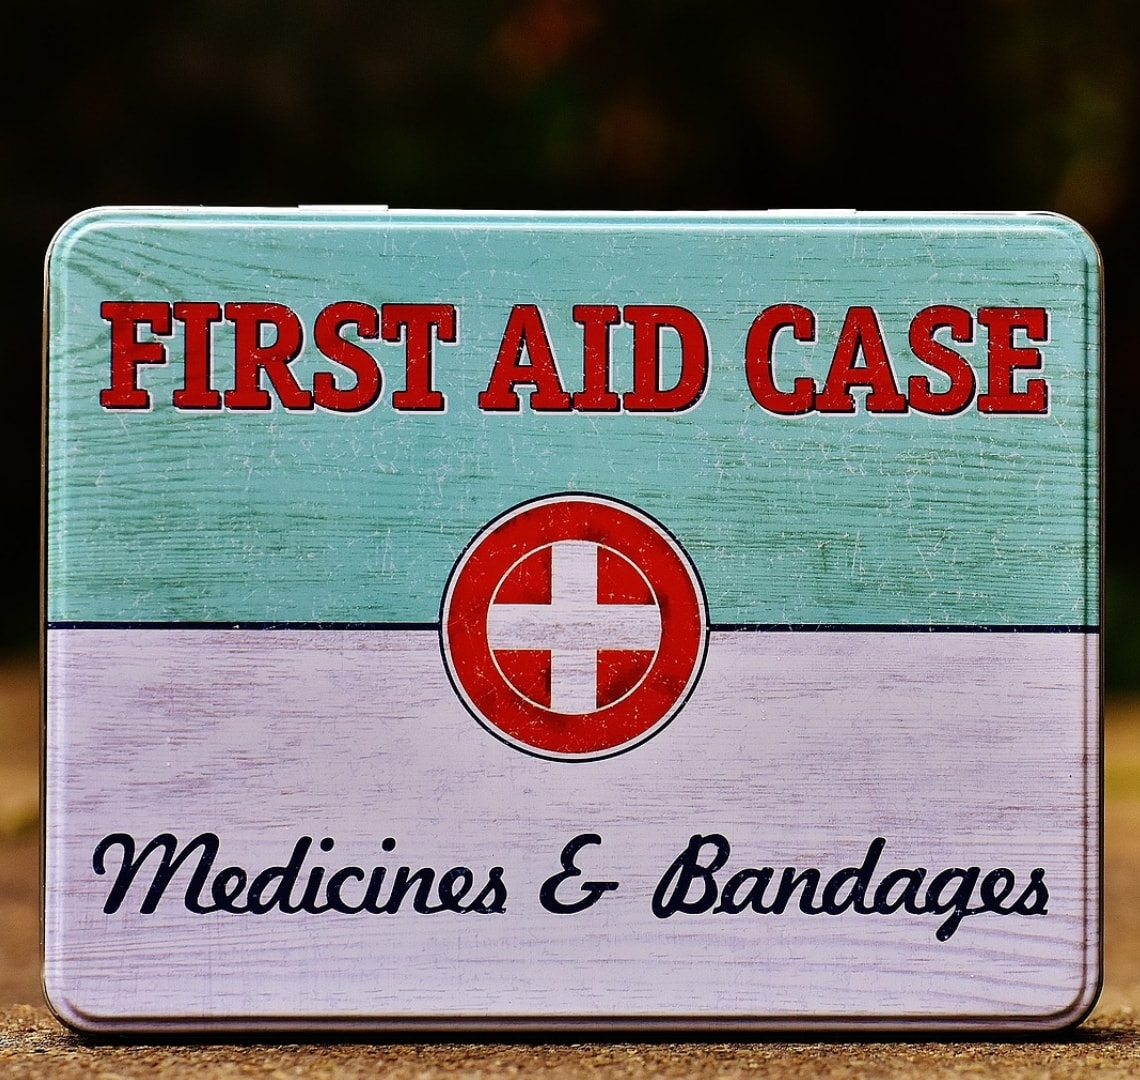 "Safari first aid Kir - a stock photo of an old / retro fist aid box in white and turquoise with red writing. It says ""FIRST AID CASE - Medicines & Bandages""."